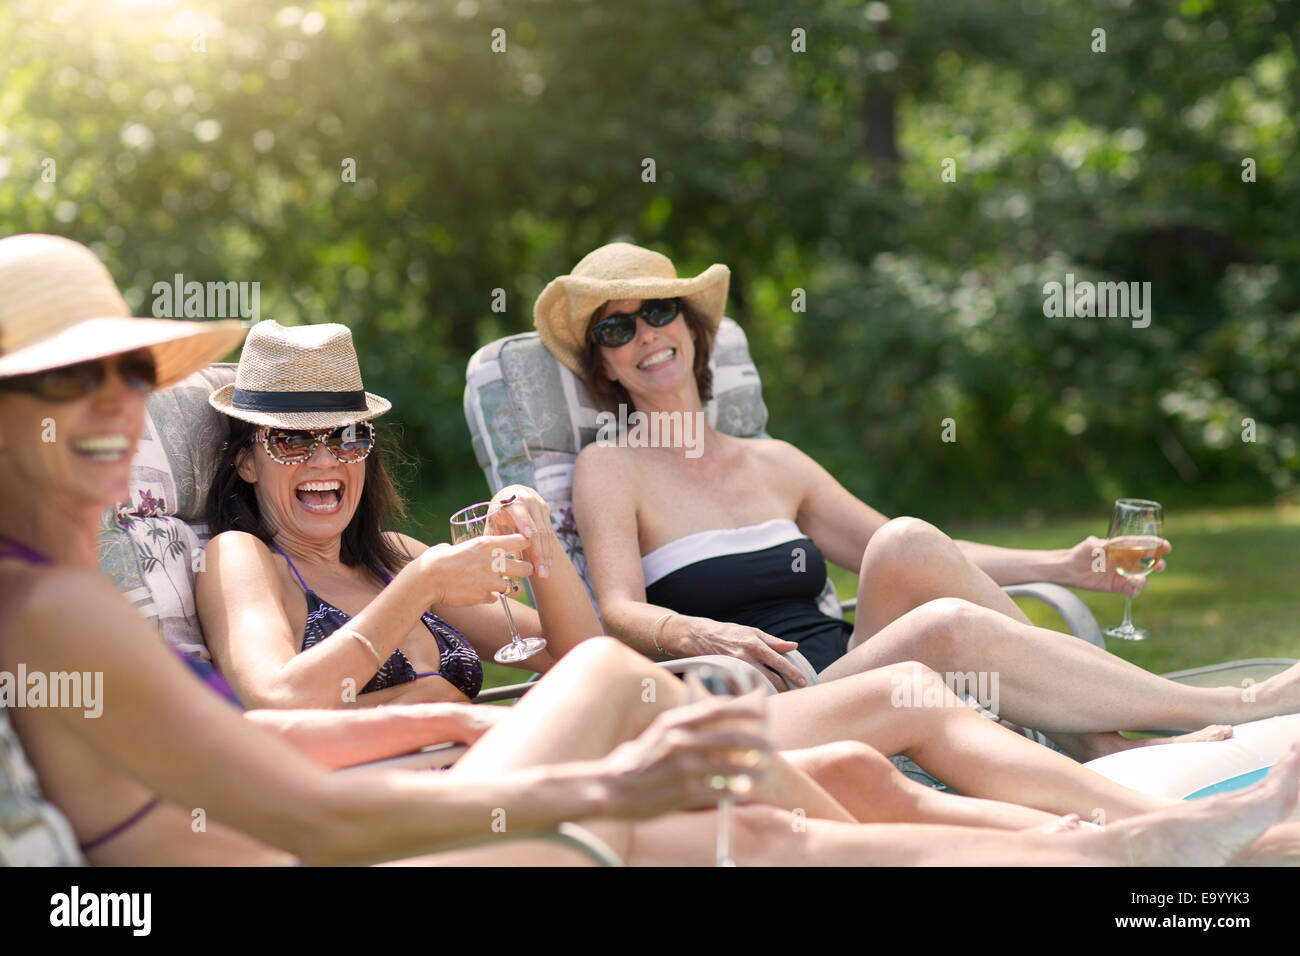 Three mature women relaxing in sun loungers, drinking wine - Stock Image